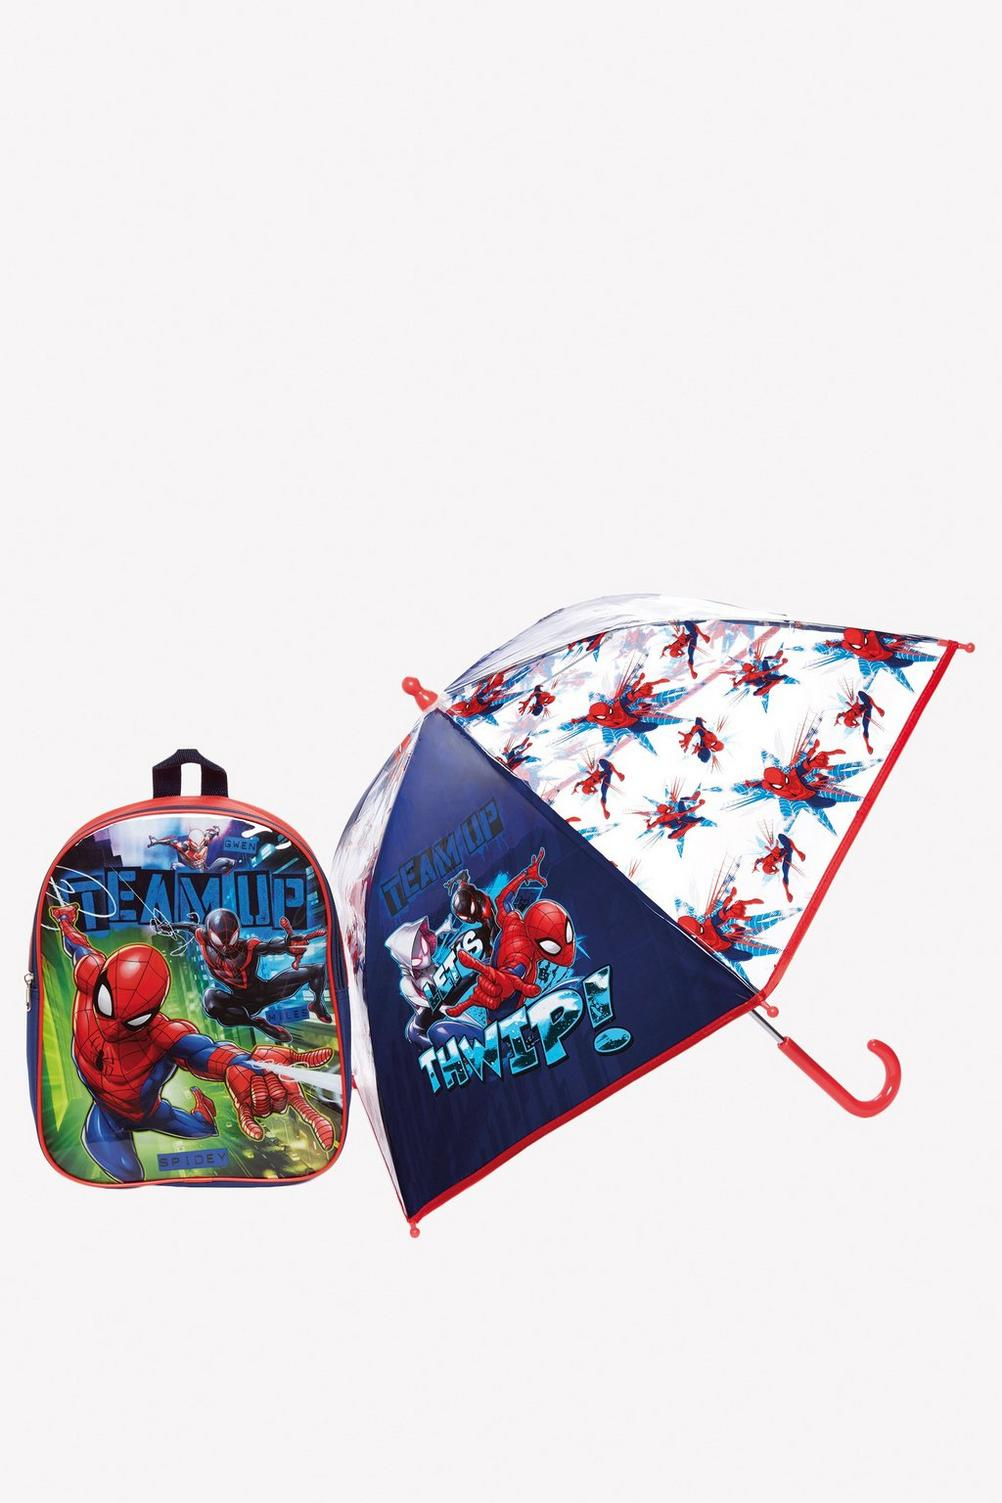 Personalised Spider-Man Backpack and Umbrella Set | Studio